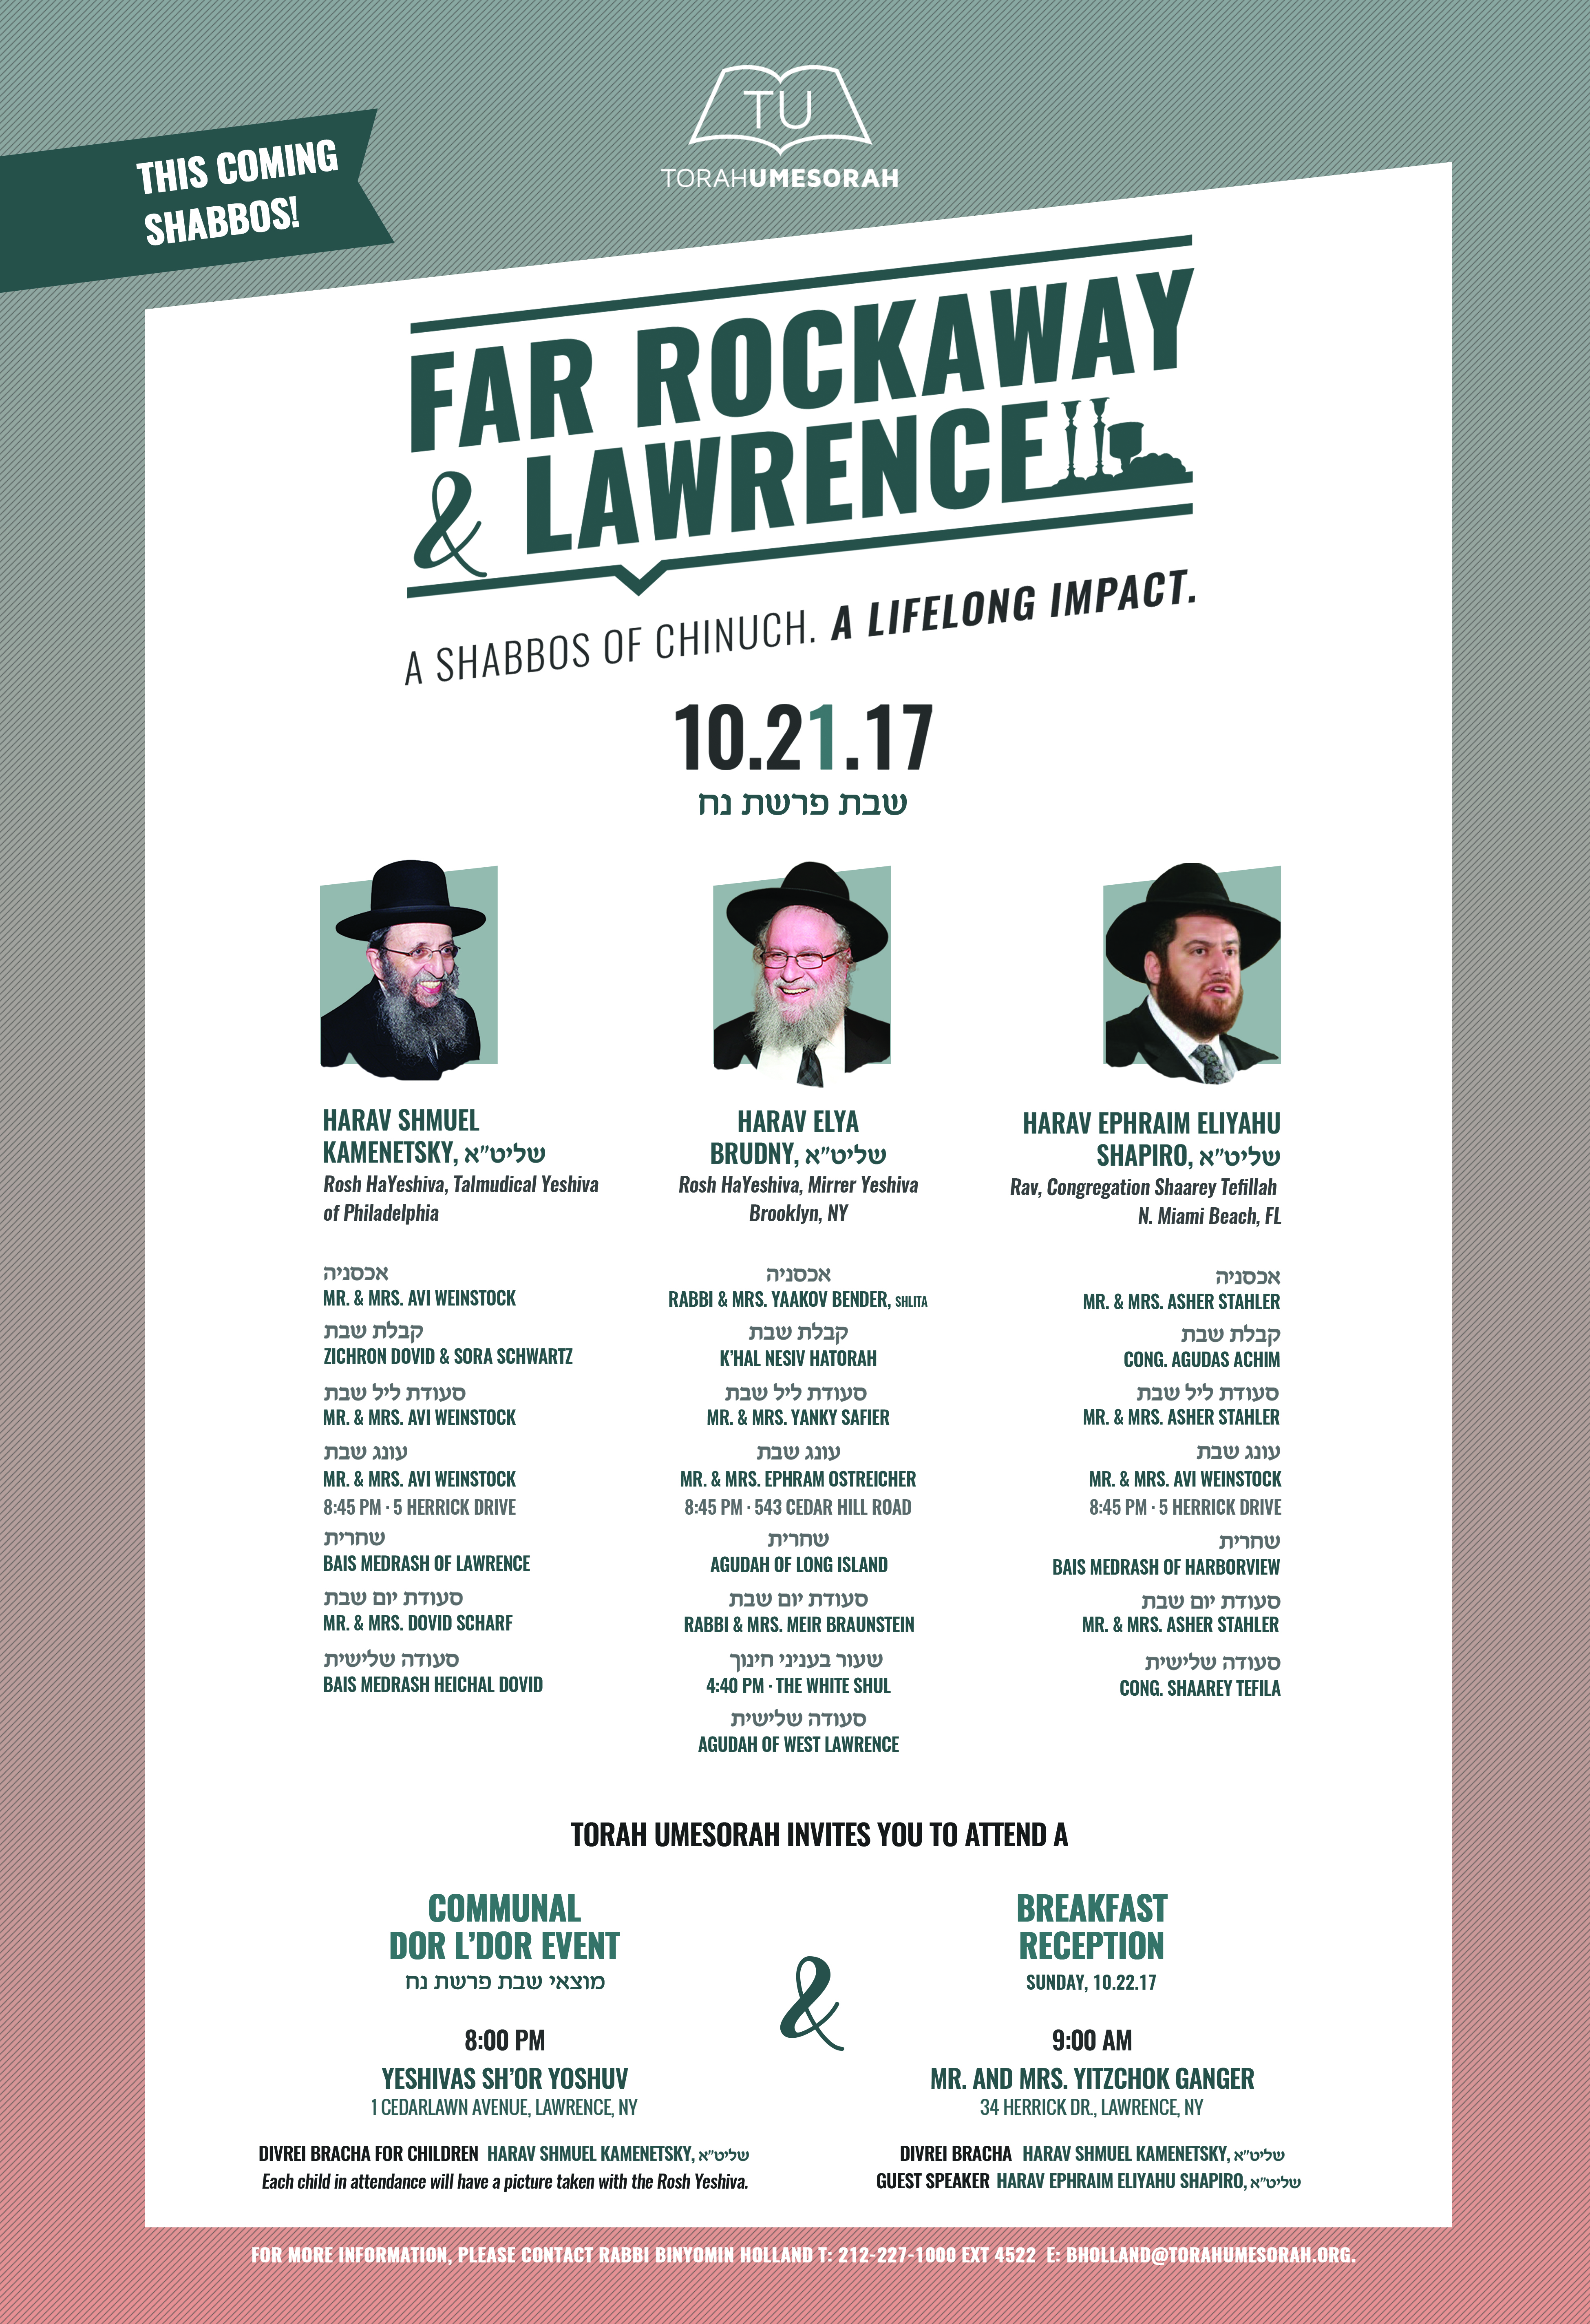 Far Rockaway/Lawrence Shabbos of Chinuch